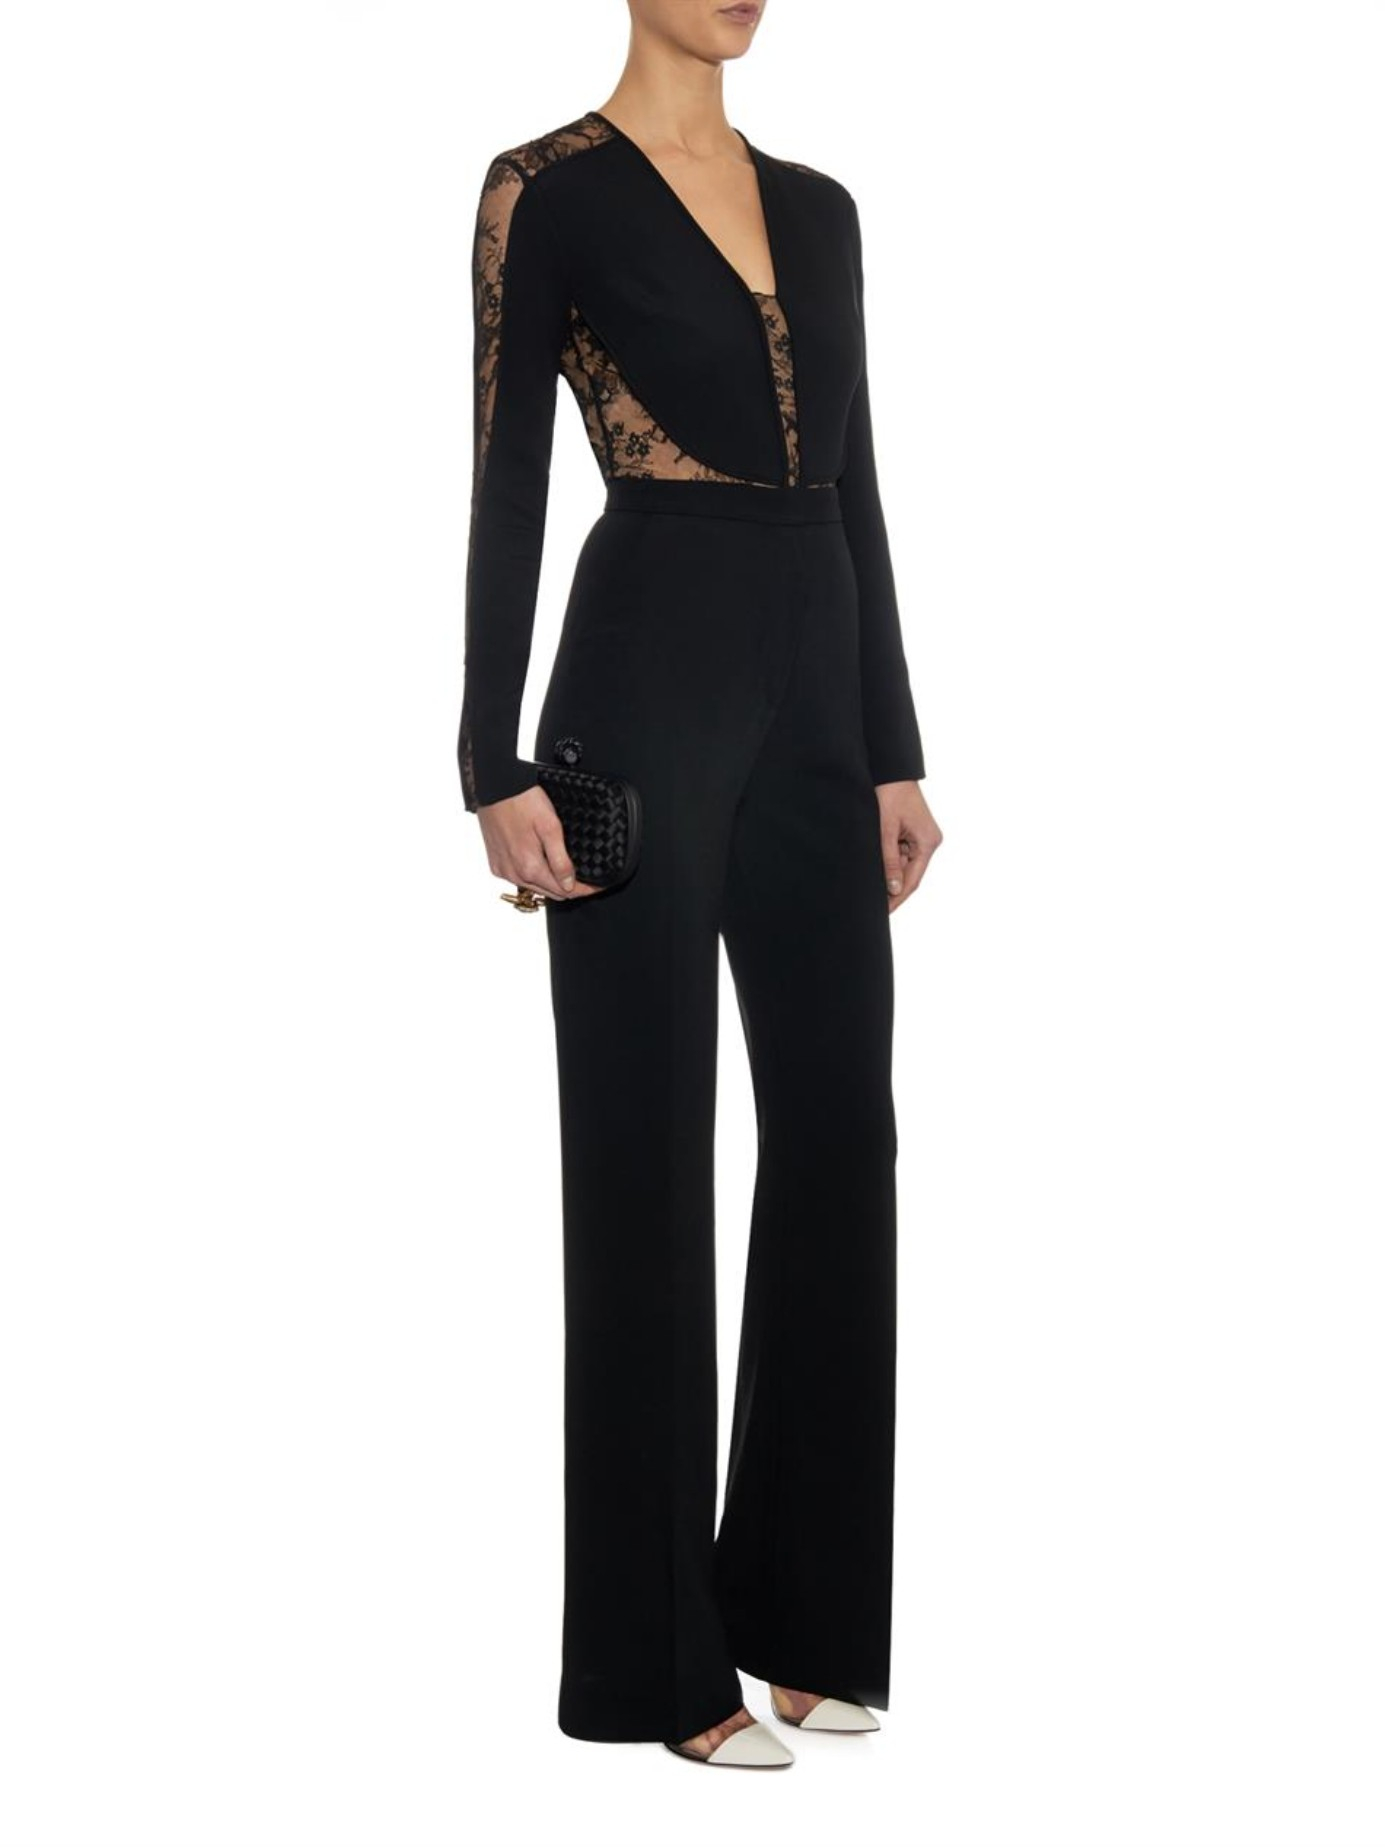 86ed2e641f89 Lyst - Elie Saab Lace-panel Stretch-cady Jumpsuit in Black